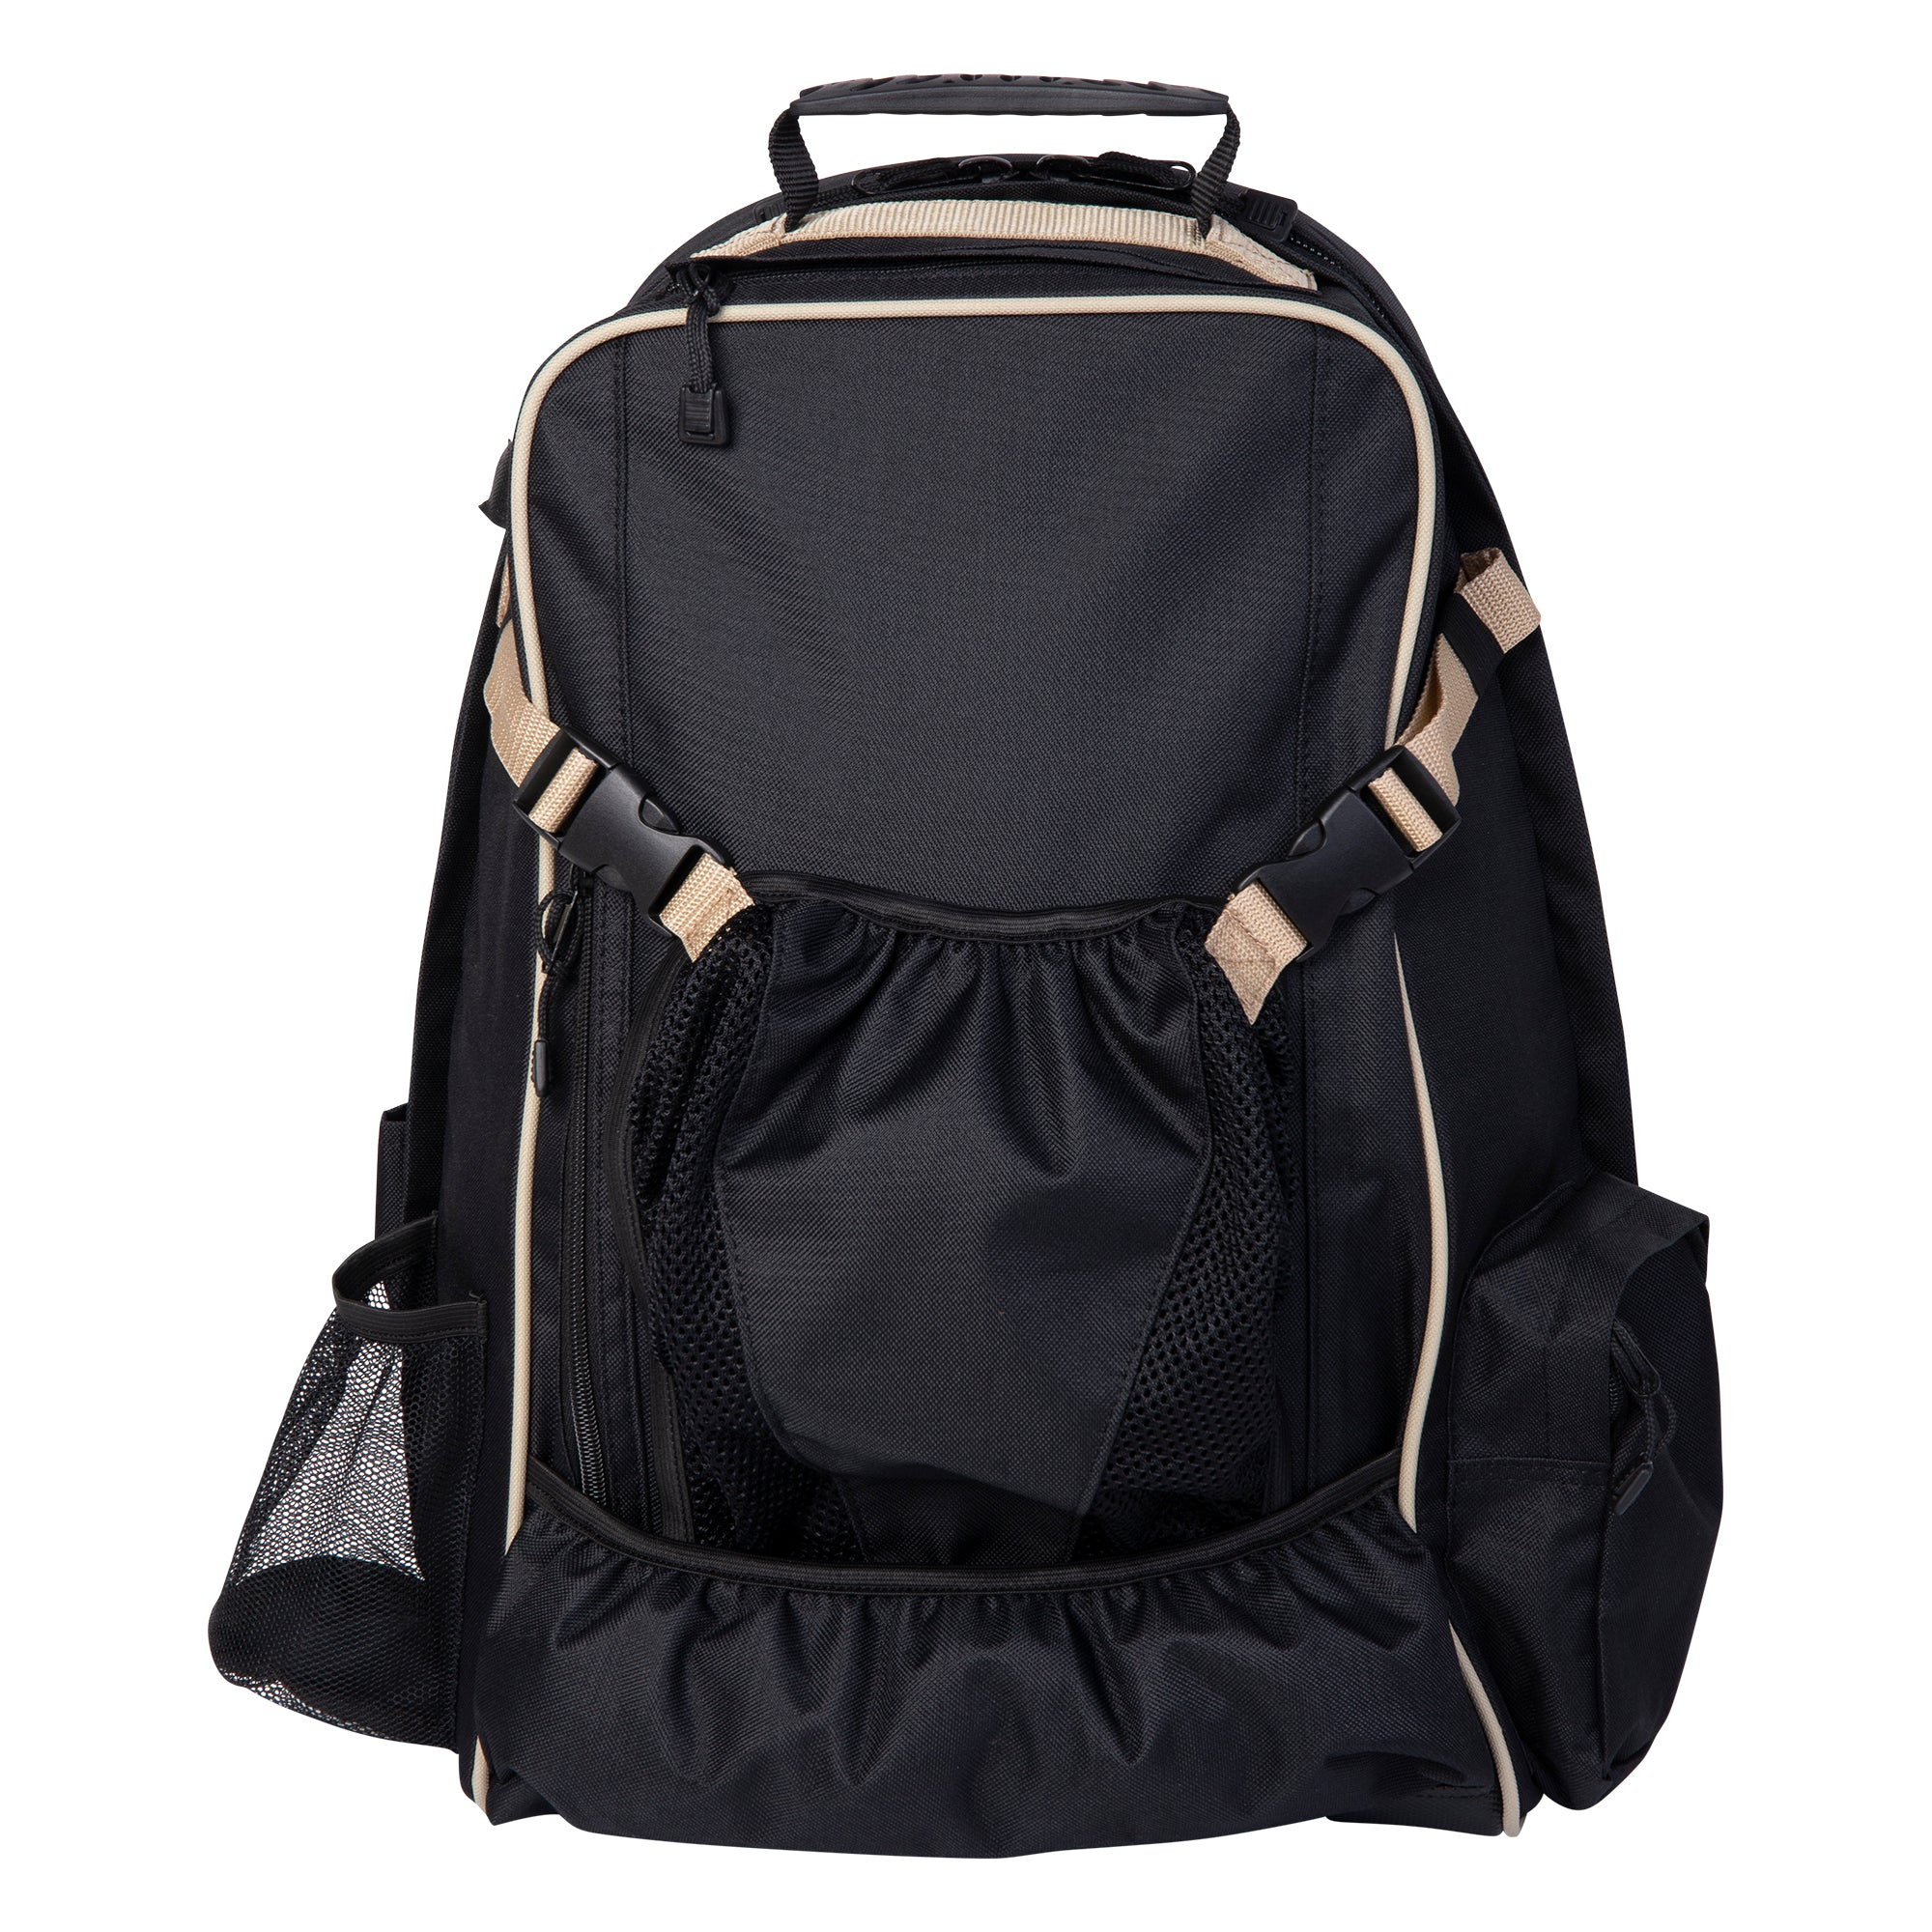 Huntley Equestrian Deluxe Equestrian Backpack, Black - Huntley Equestrian